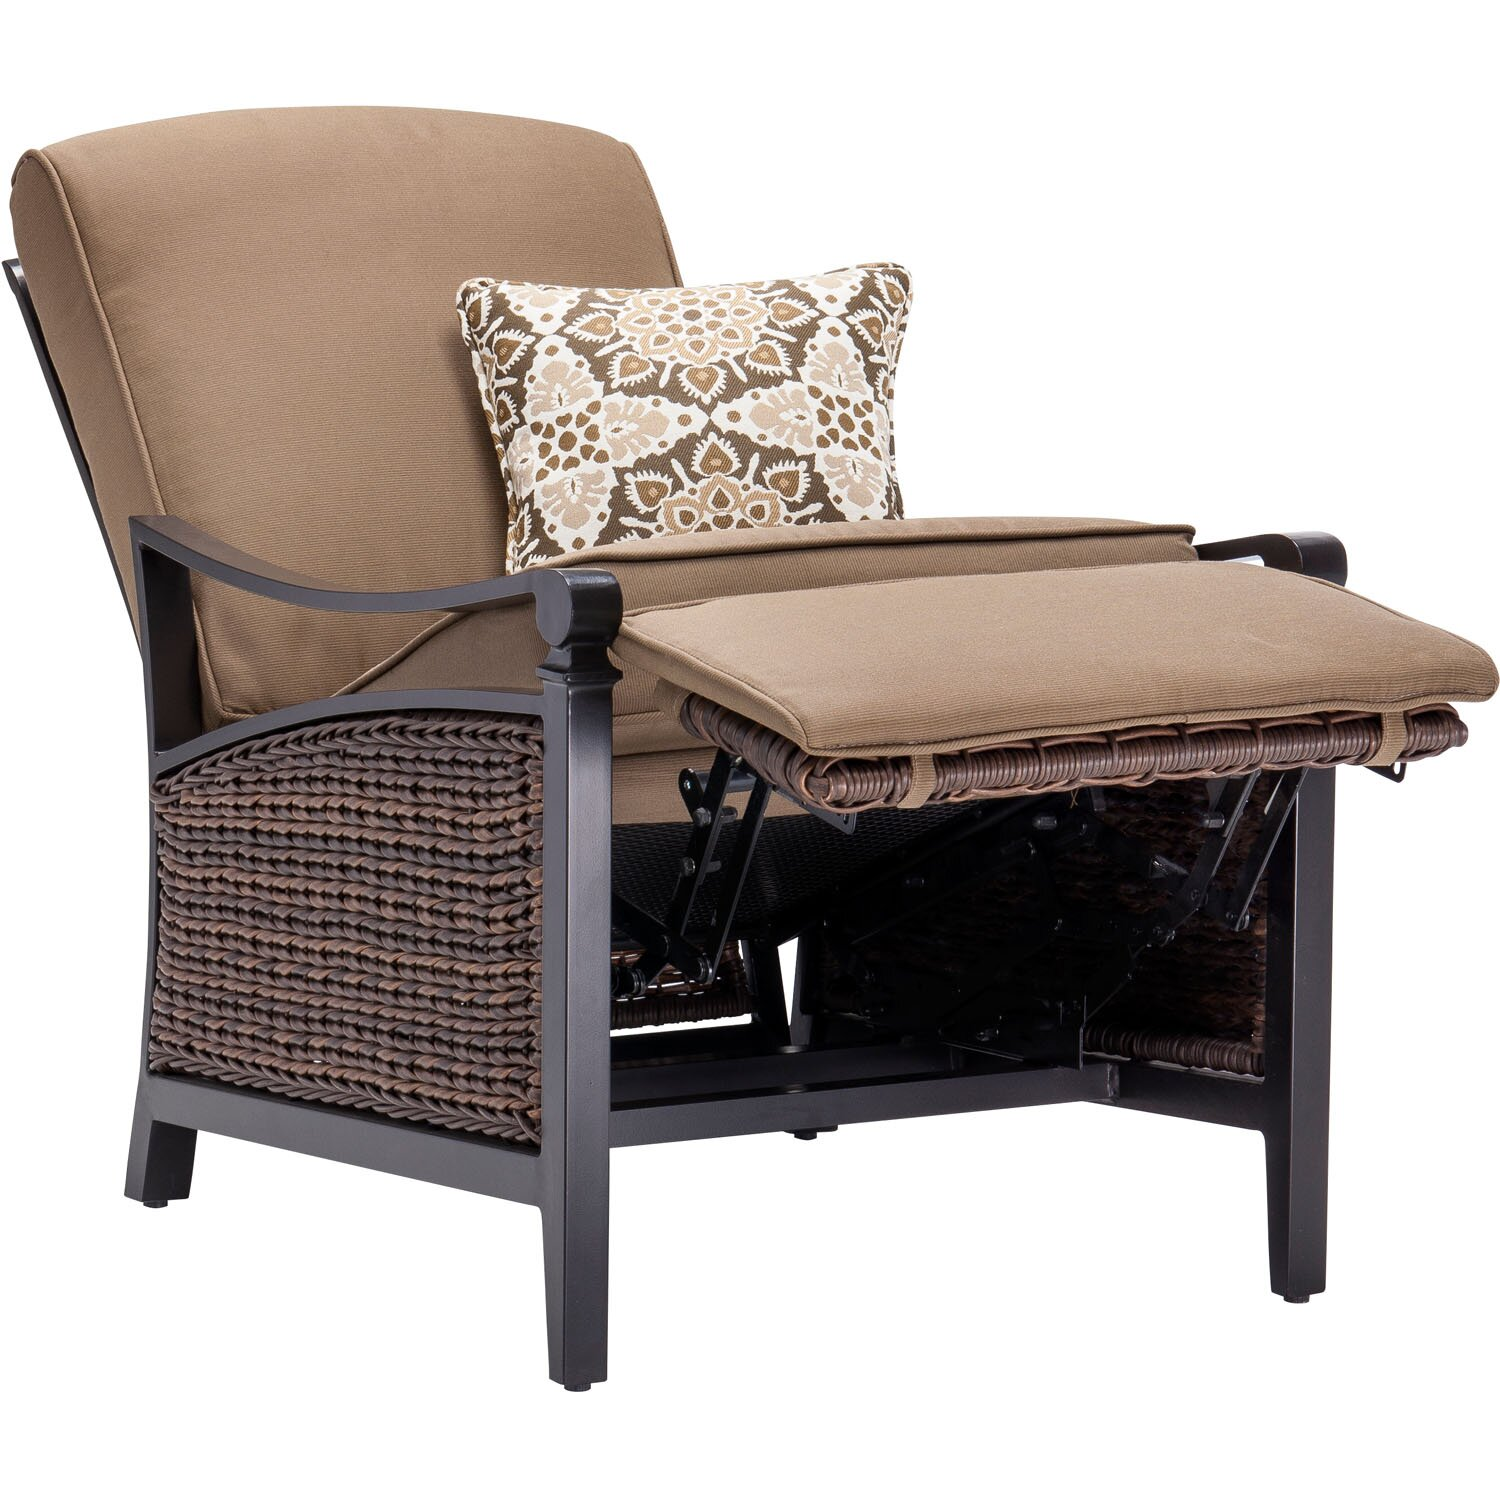 Captivating LaZBoy Carson Luxury Outdoor Recliner Chair With Cushions  Wayfair